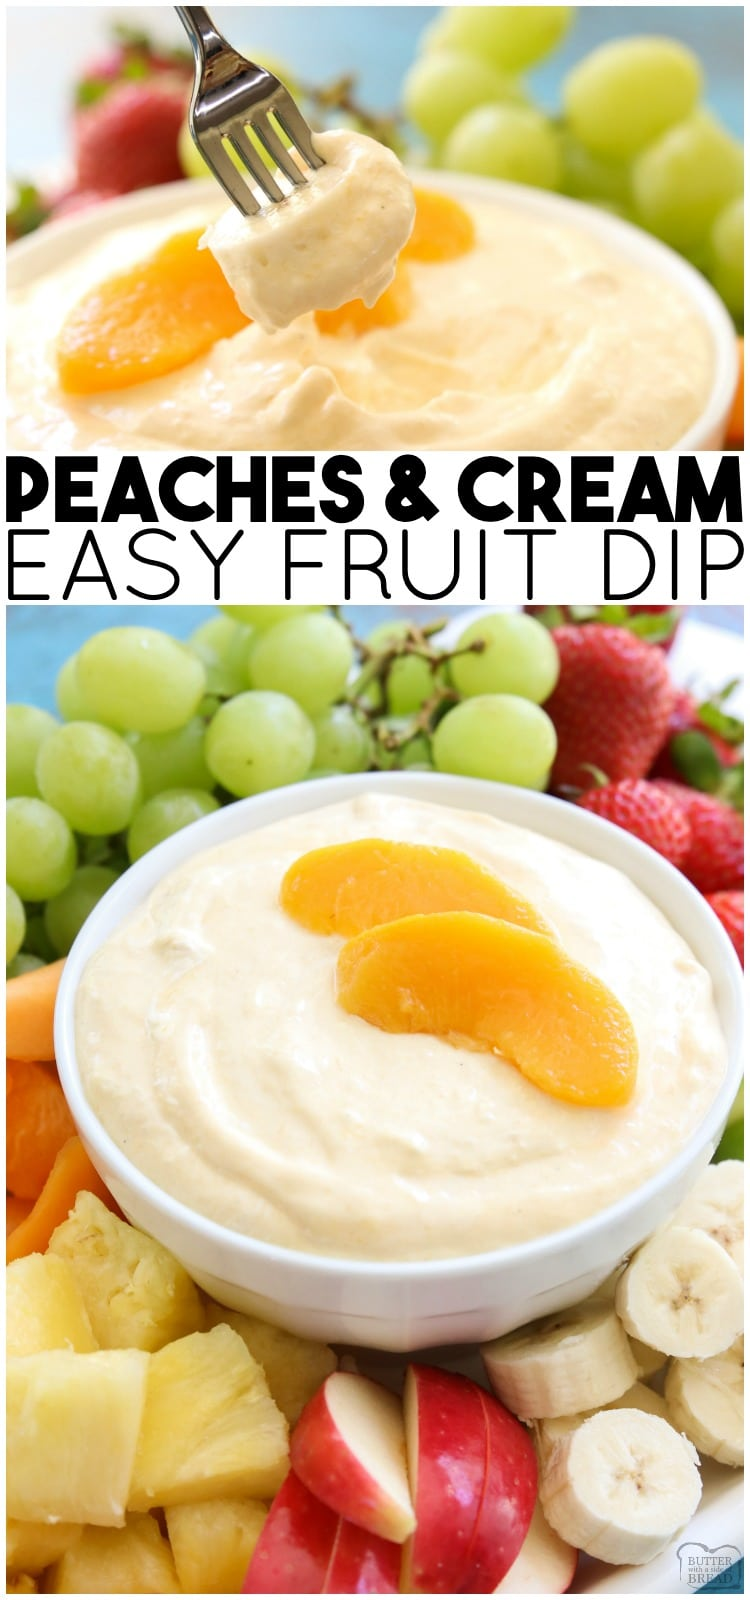 Peaches and Cream Fruit Dip is a sweet cream cheese fruit dip perfect for any occasion! This 5 ingredient peaches and cream recipe is easy, delicious, and perfect served with fresh fruit.  #fruit #peach #peachesandcream #fruitdip #easyrecipe from BUTTER WITH A SIDE OF BREAD